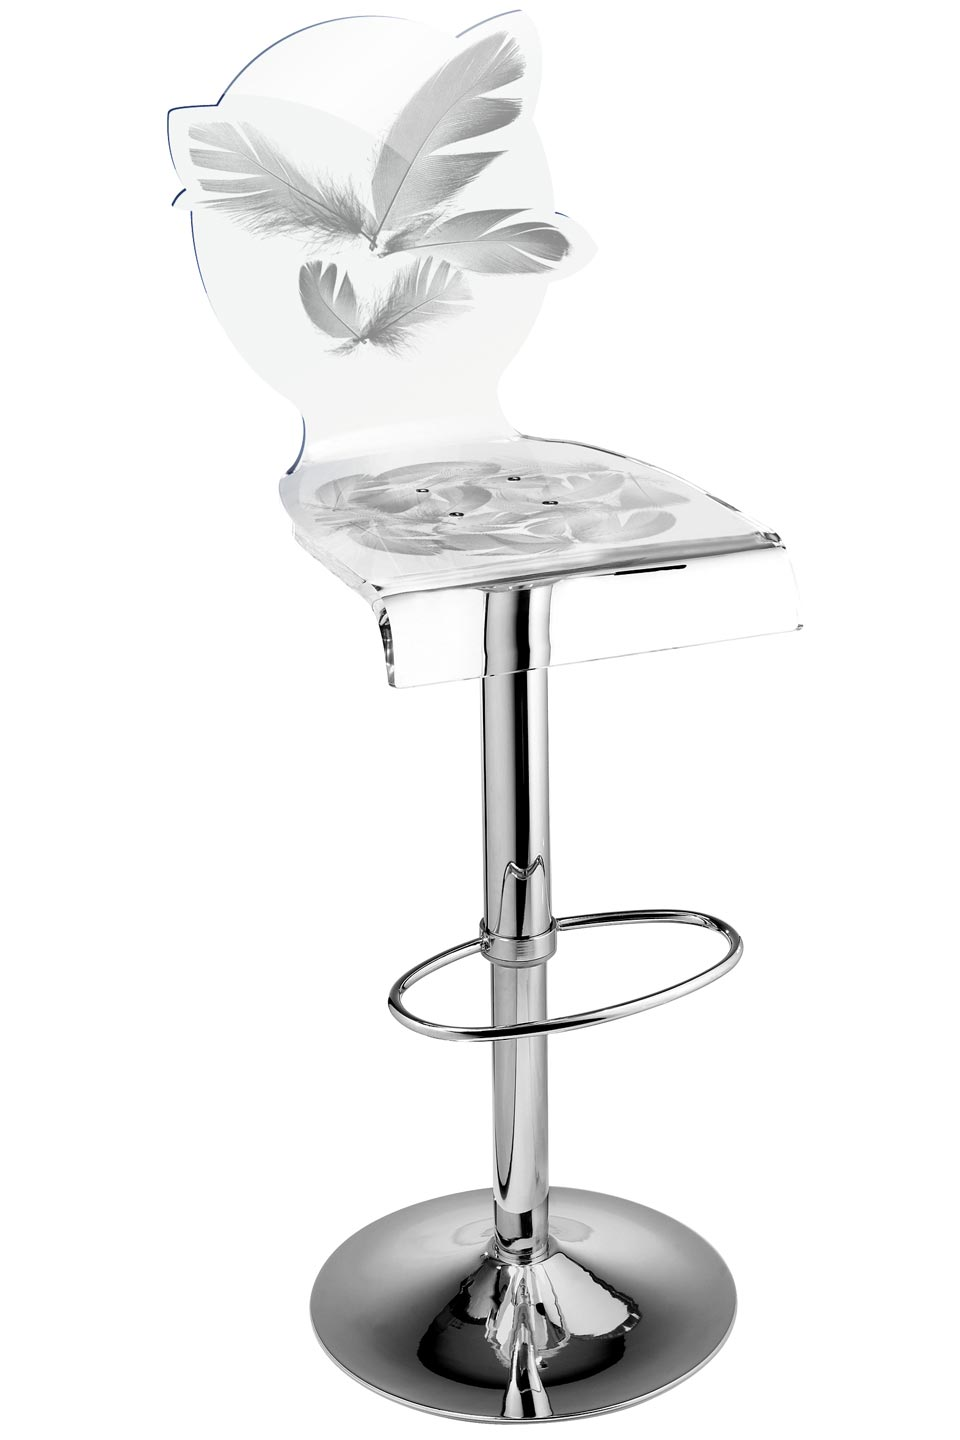 Tabouret De Bar Plastique Transparent Tabouret Bar Plexi Transparent Plexiglas Orange Transparent